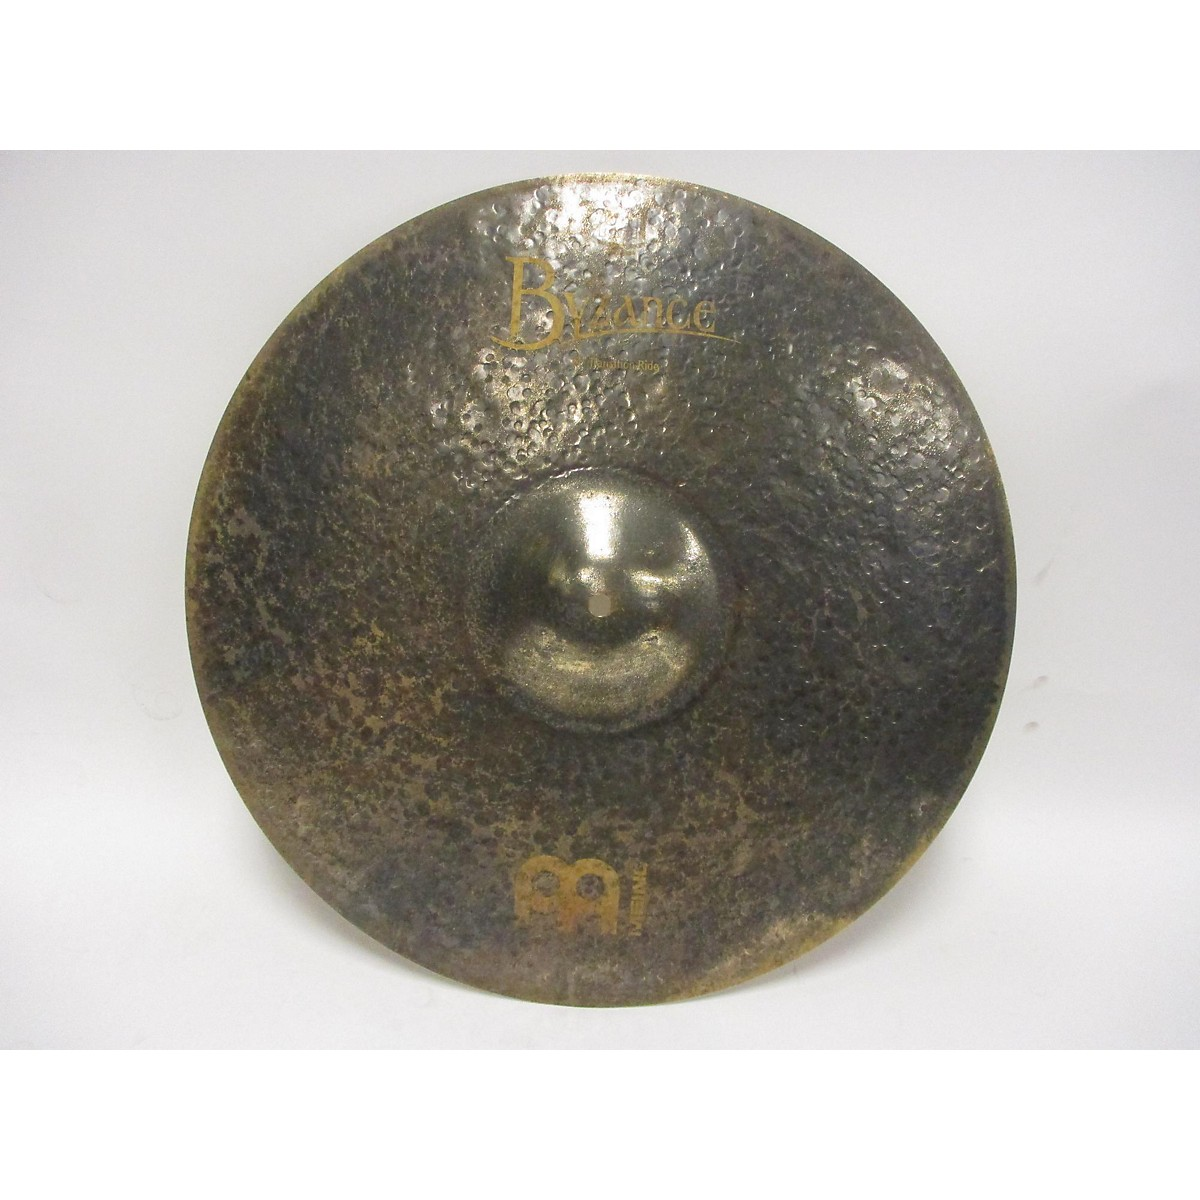 Meinl 21in Byzance Transition Ride Cymbal